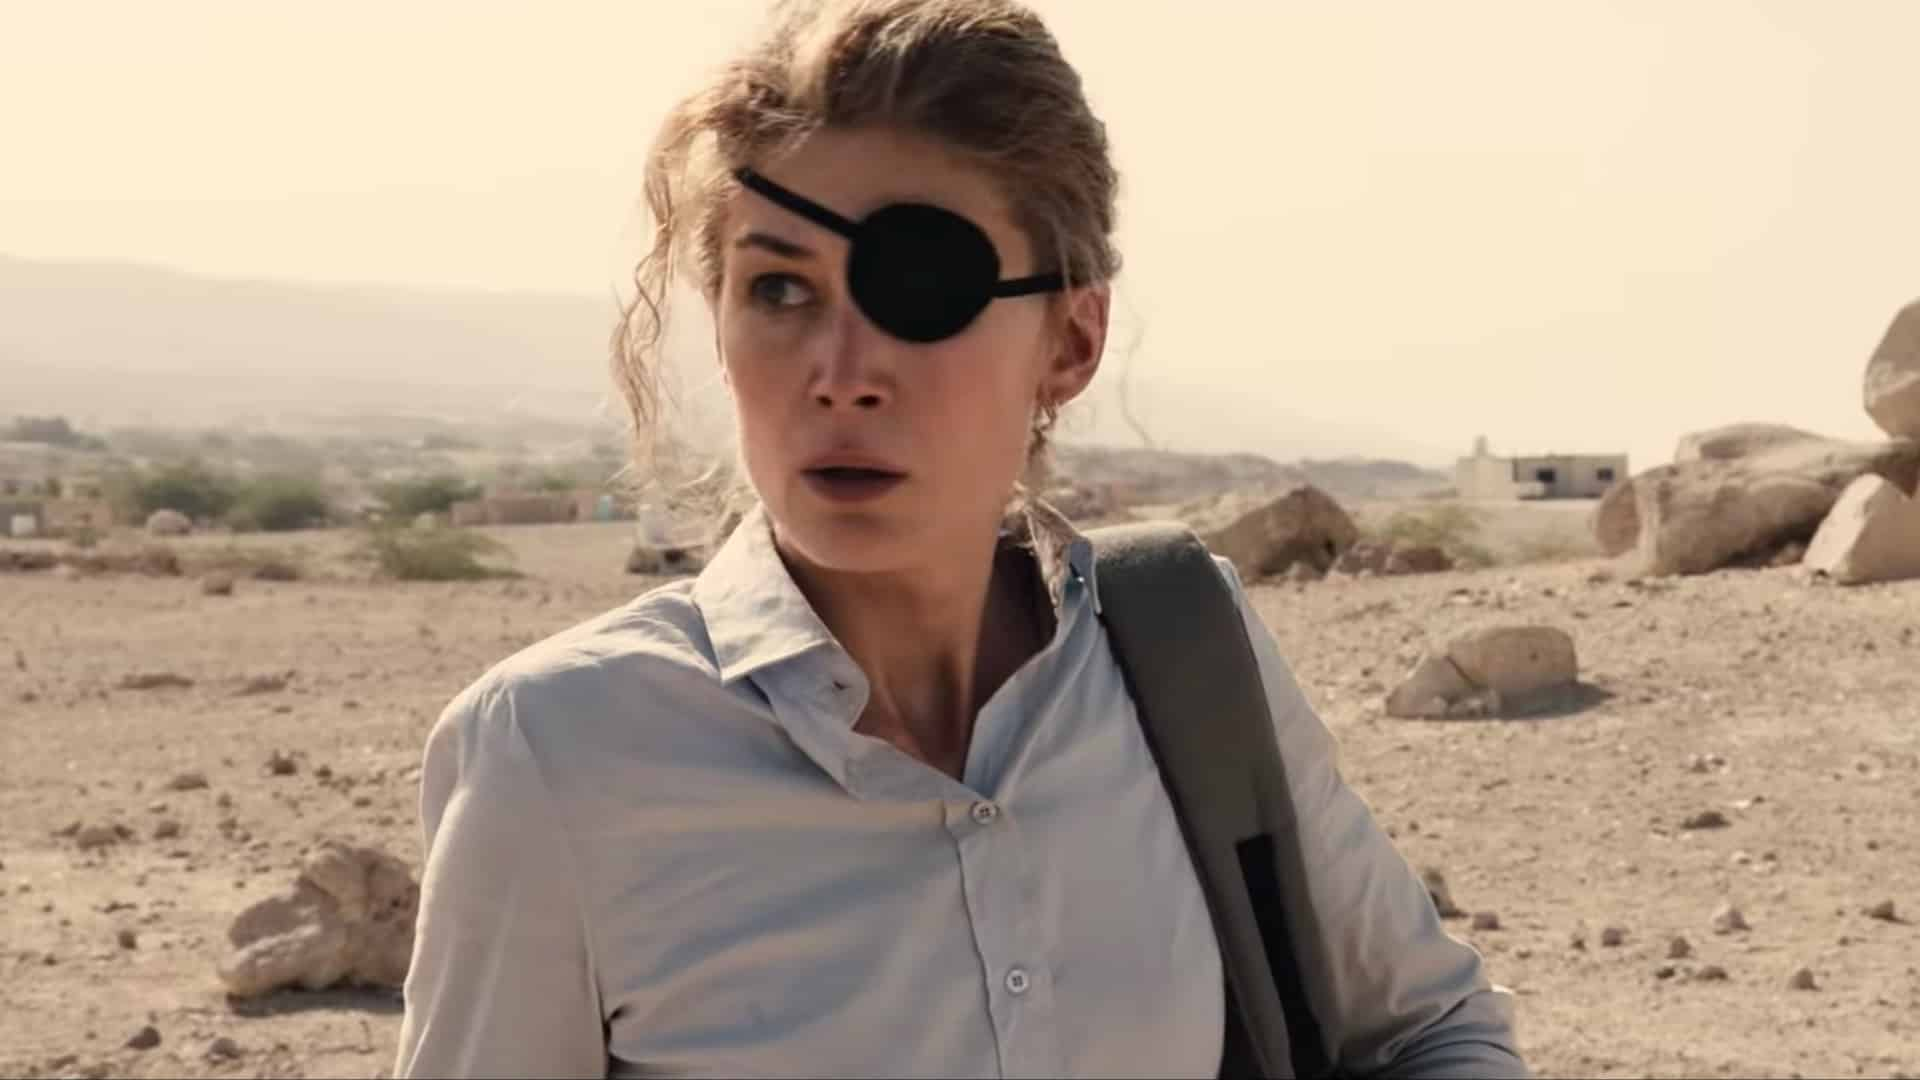 Film Review: A Private War staring Rosamund Pike / Mill Valley Film Festival